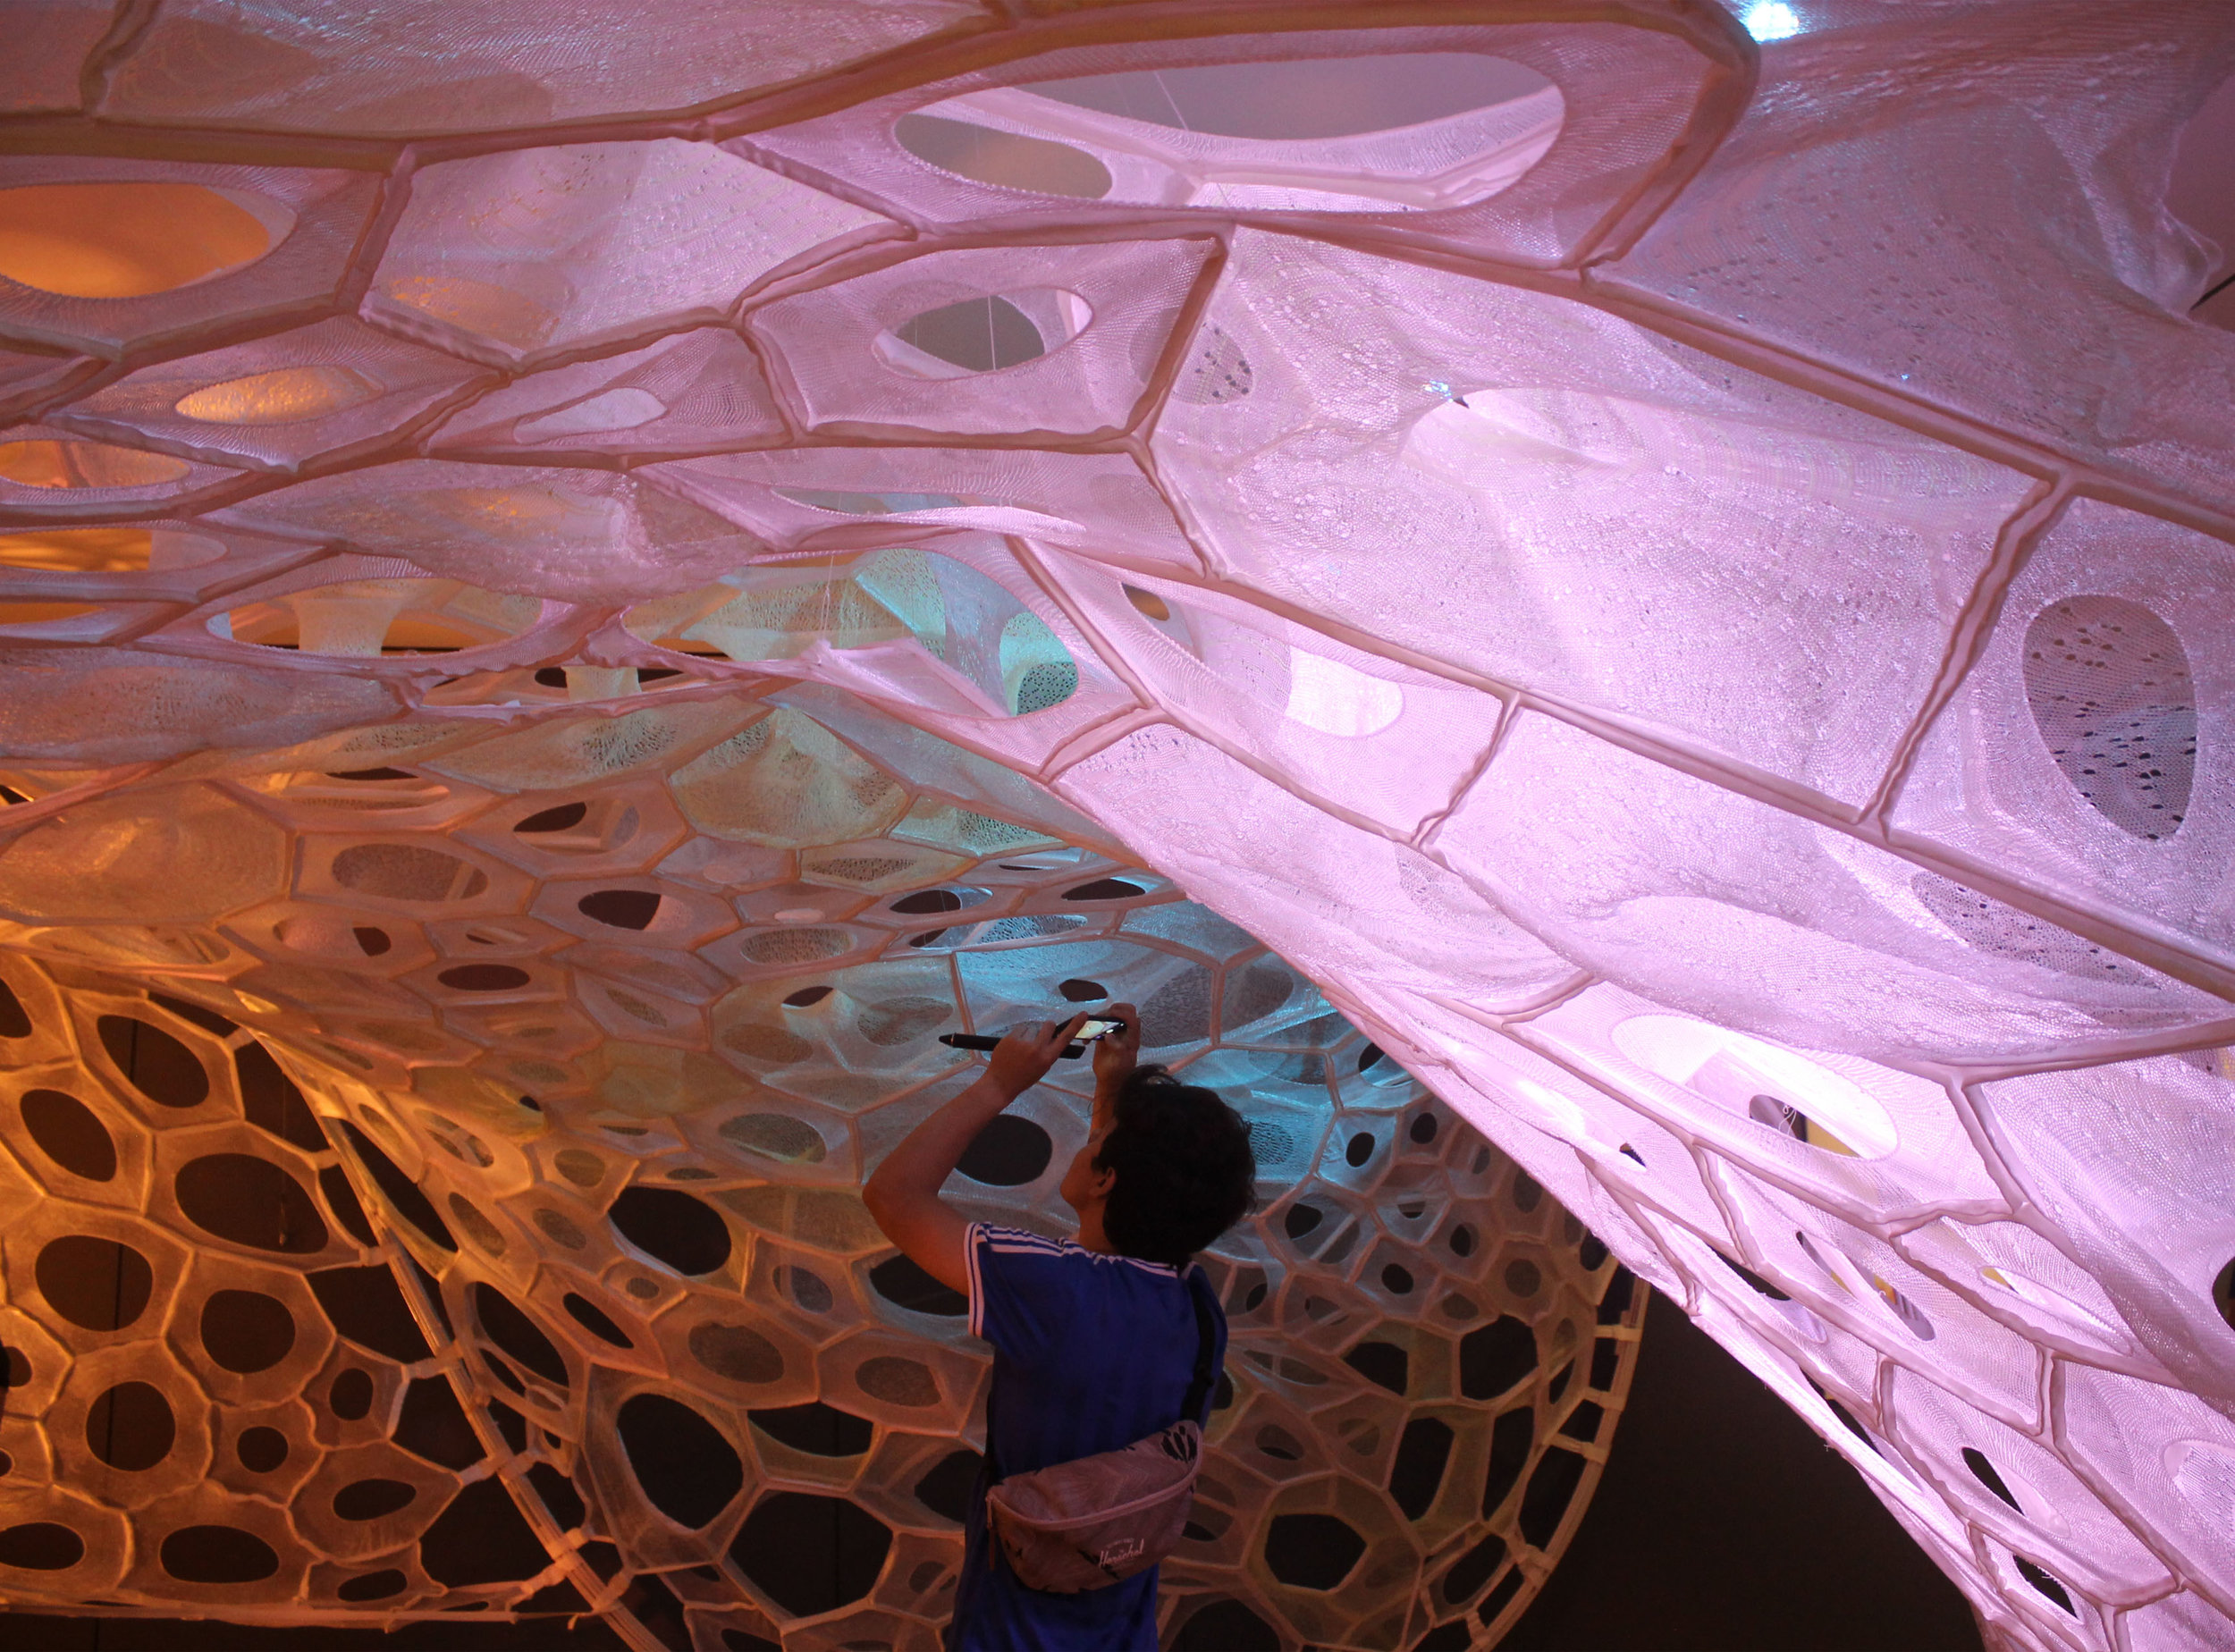 Jenny Sabin Installation.  A light-absorbing knitted textile pavilion at Copper Hewitt Design Museum in New York City, 2017